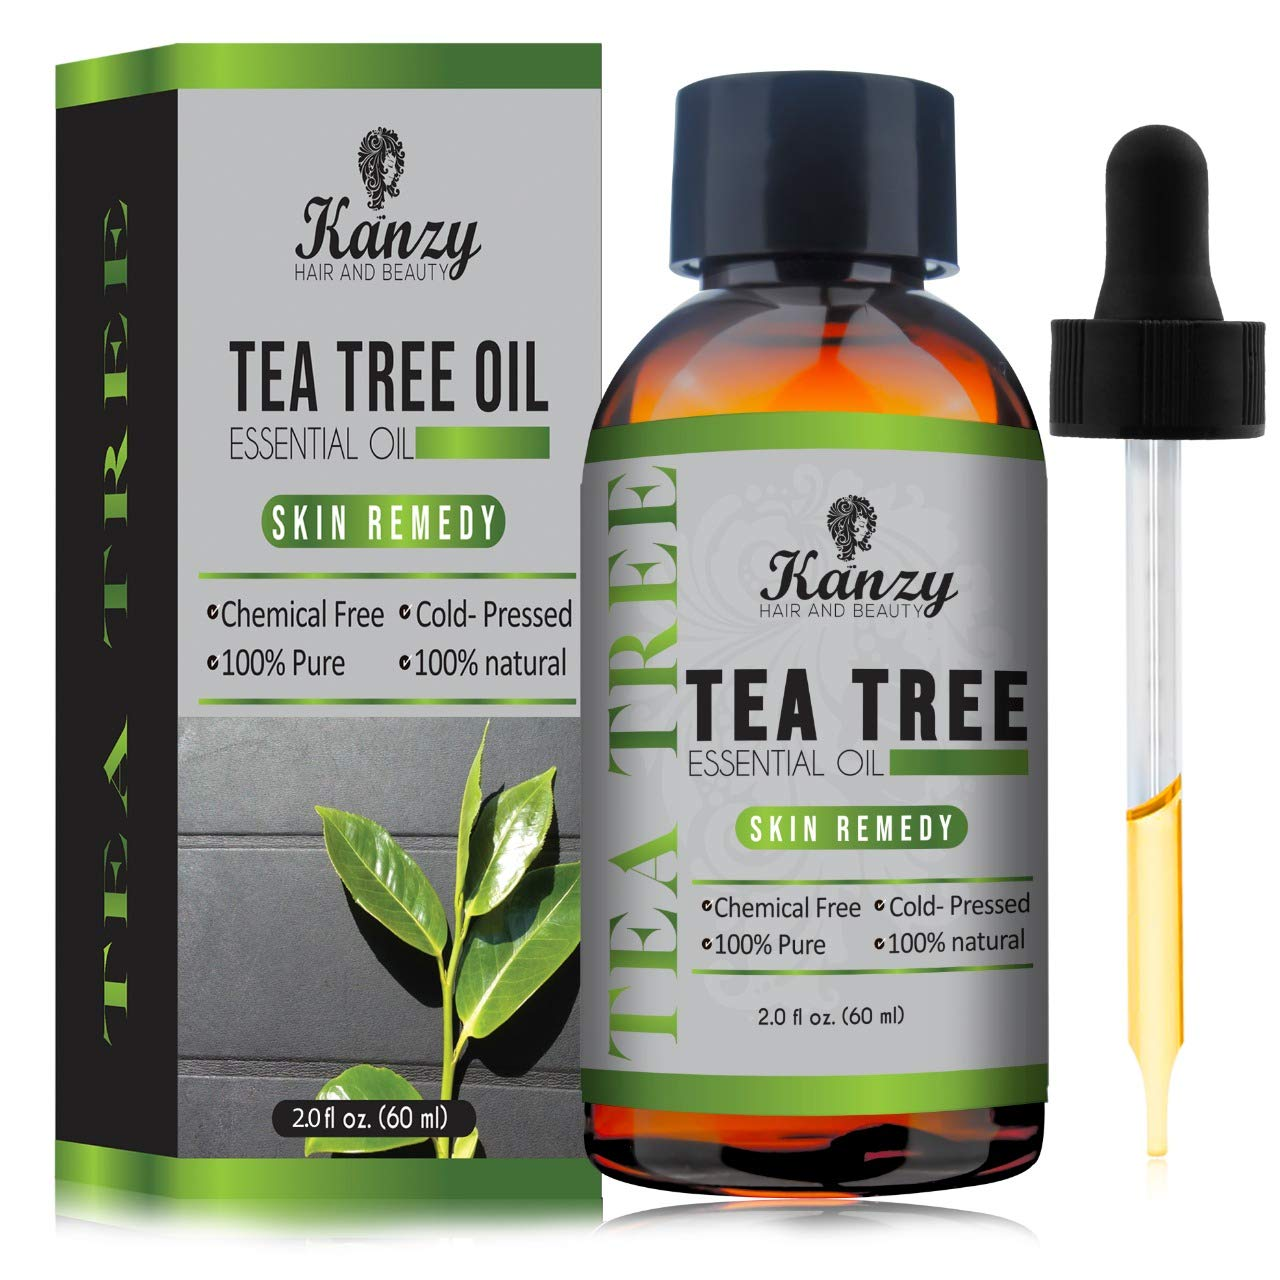 Kanzy Essential Tea Tree Oil Treatment for Face, Hair, Nail, Acne & Blemishes Pure Natural VEGAN – 60ML